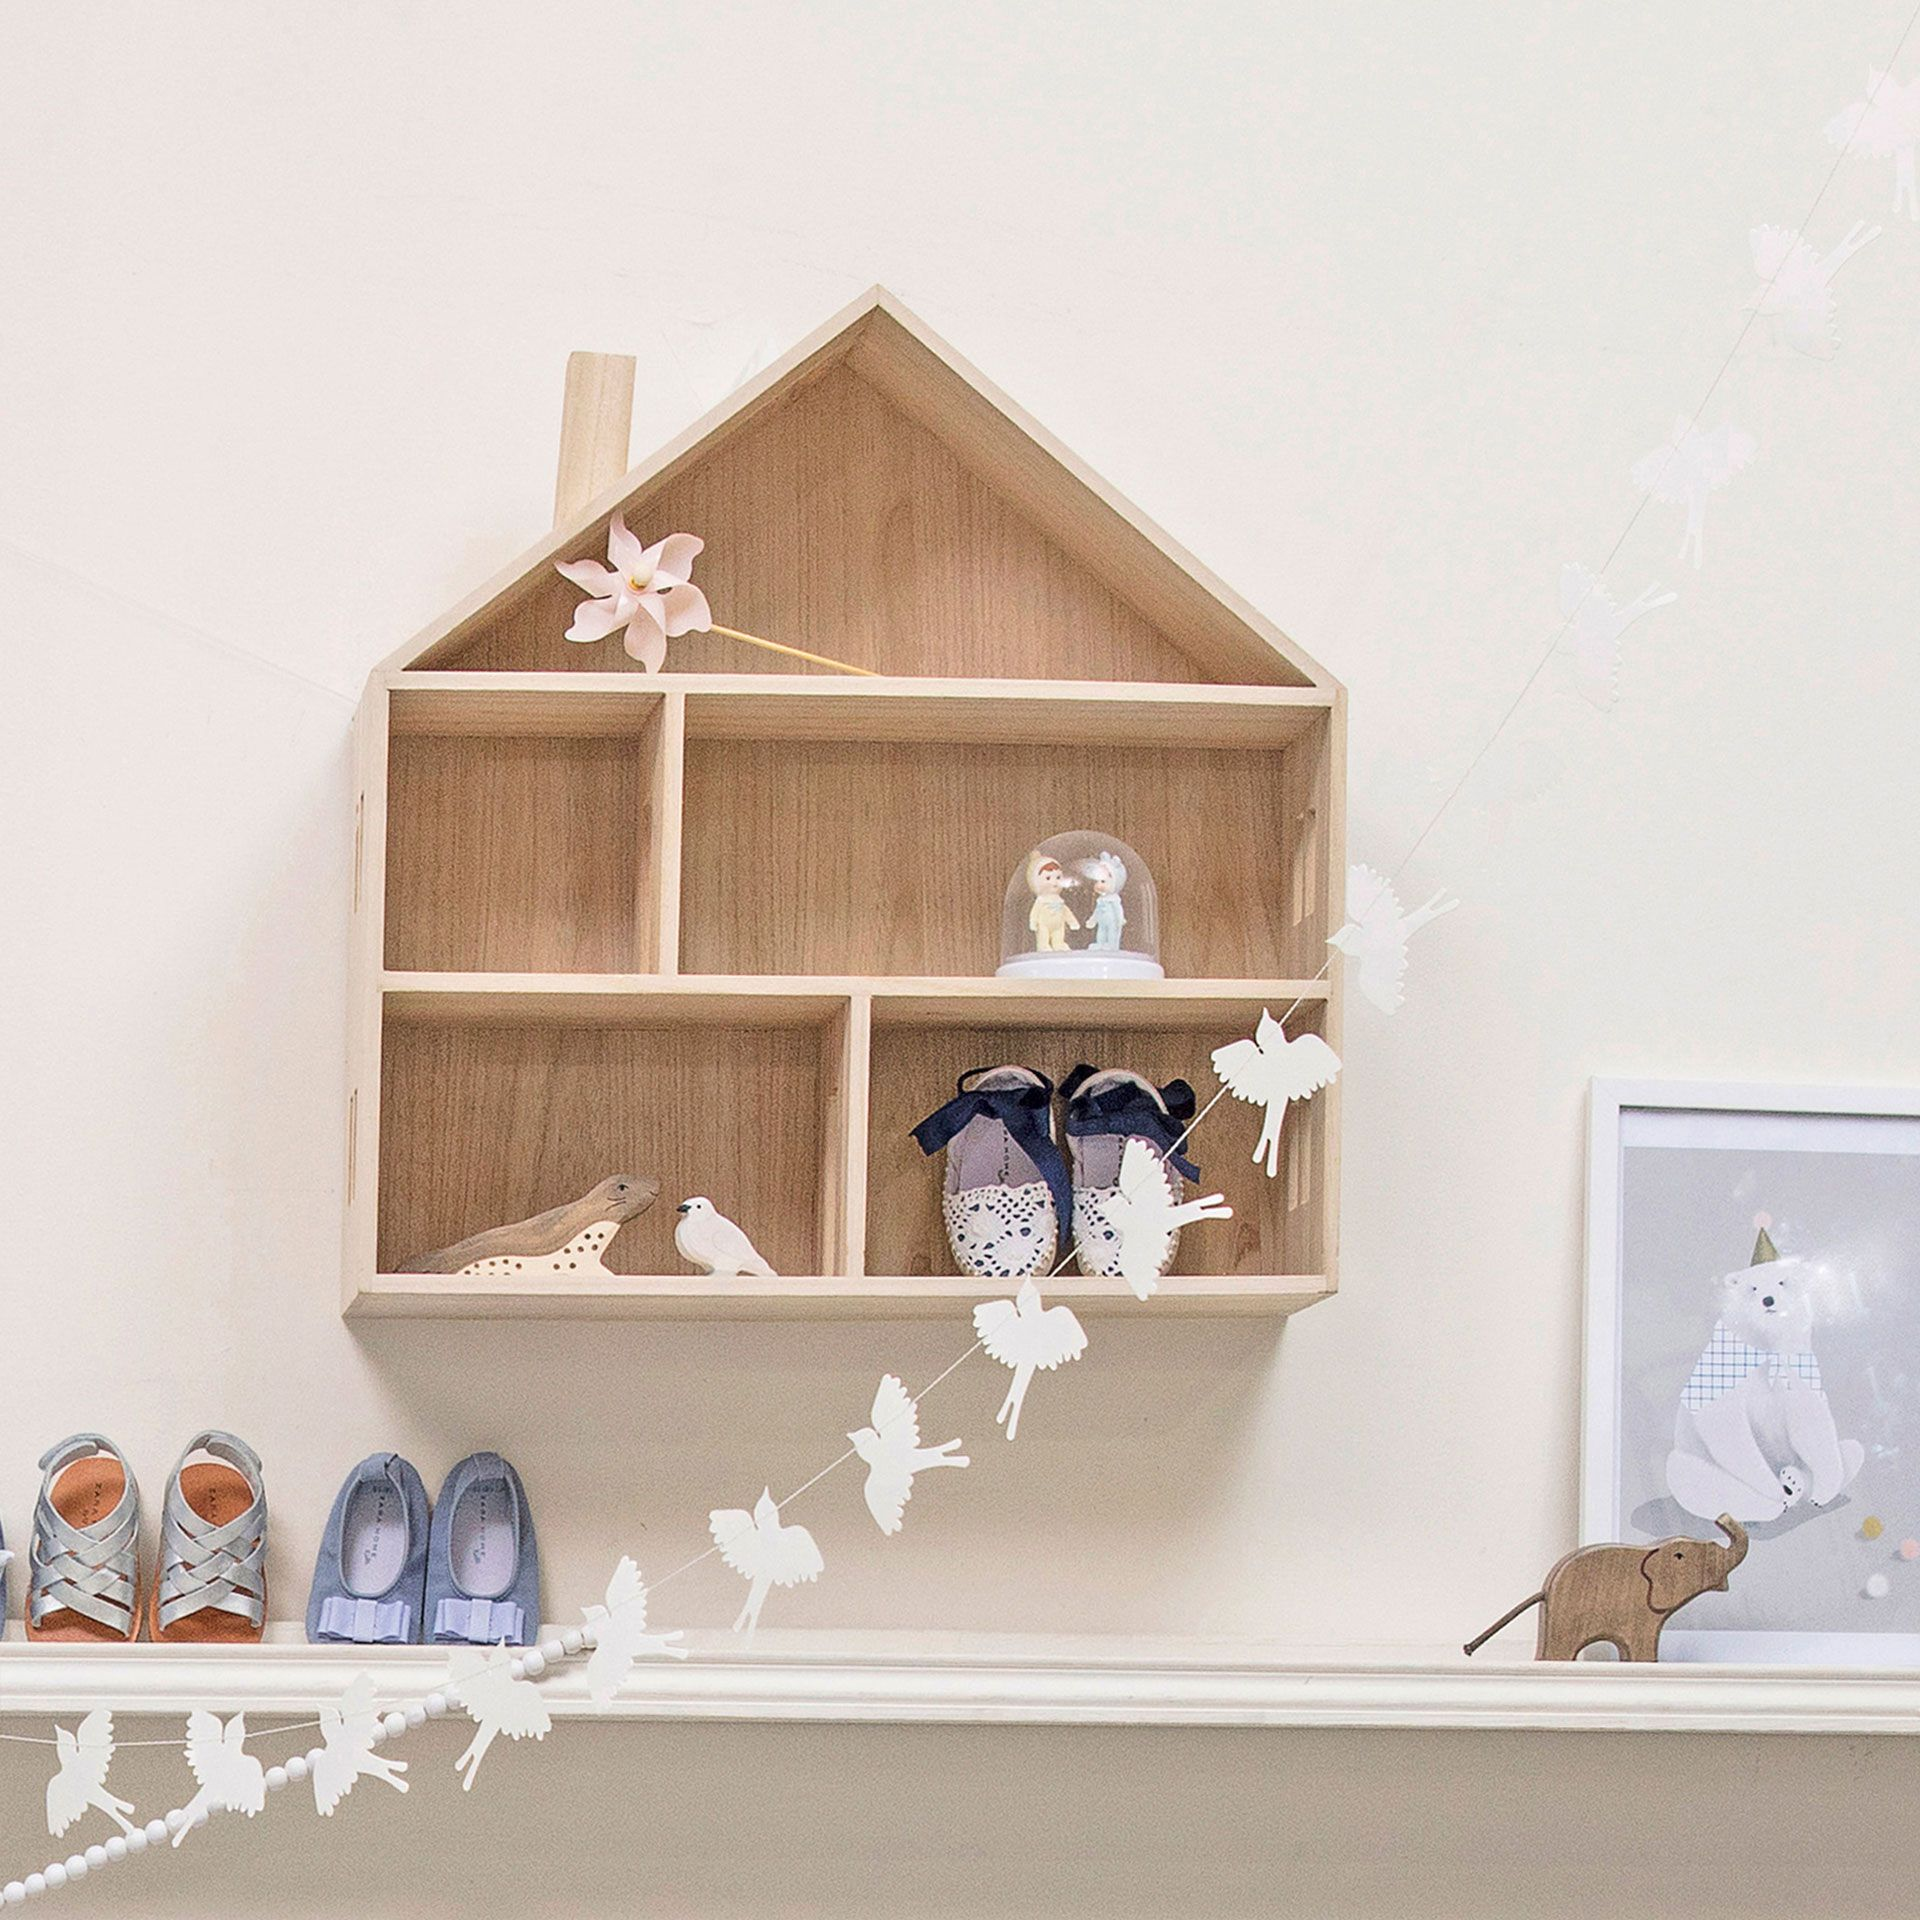 Image 7 Of The Product Little Wooden Doll House Nursery